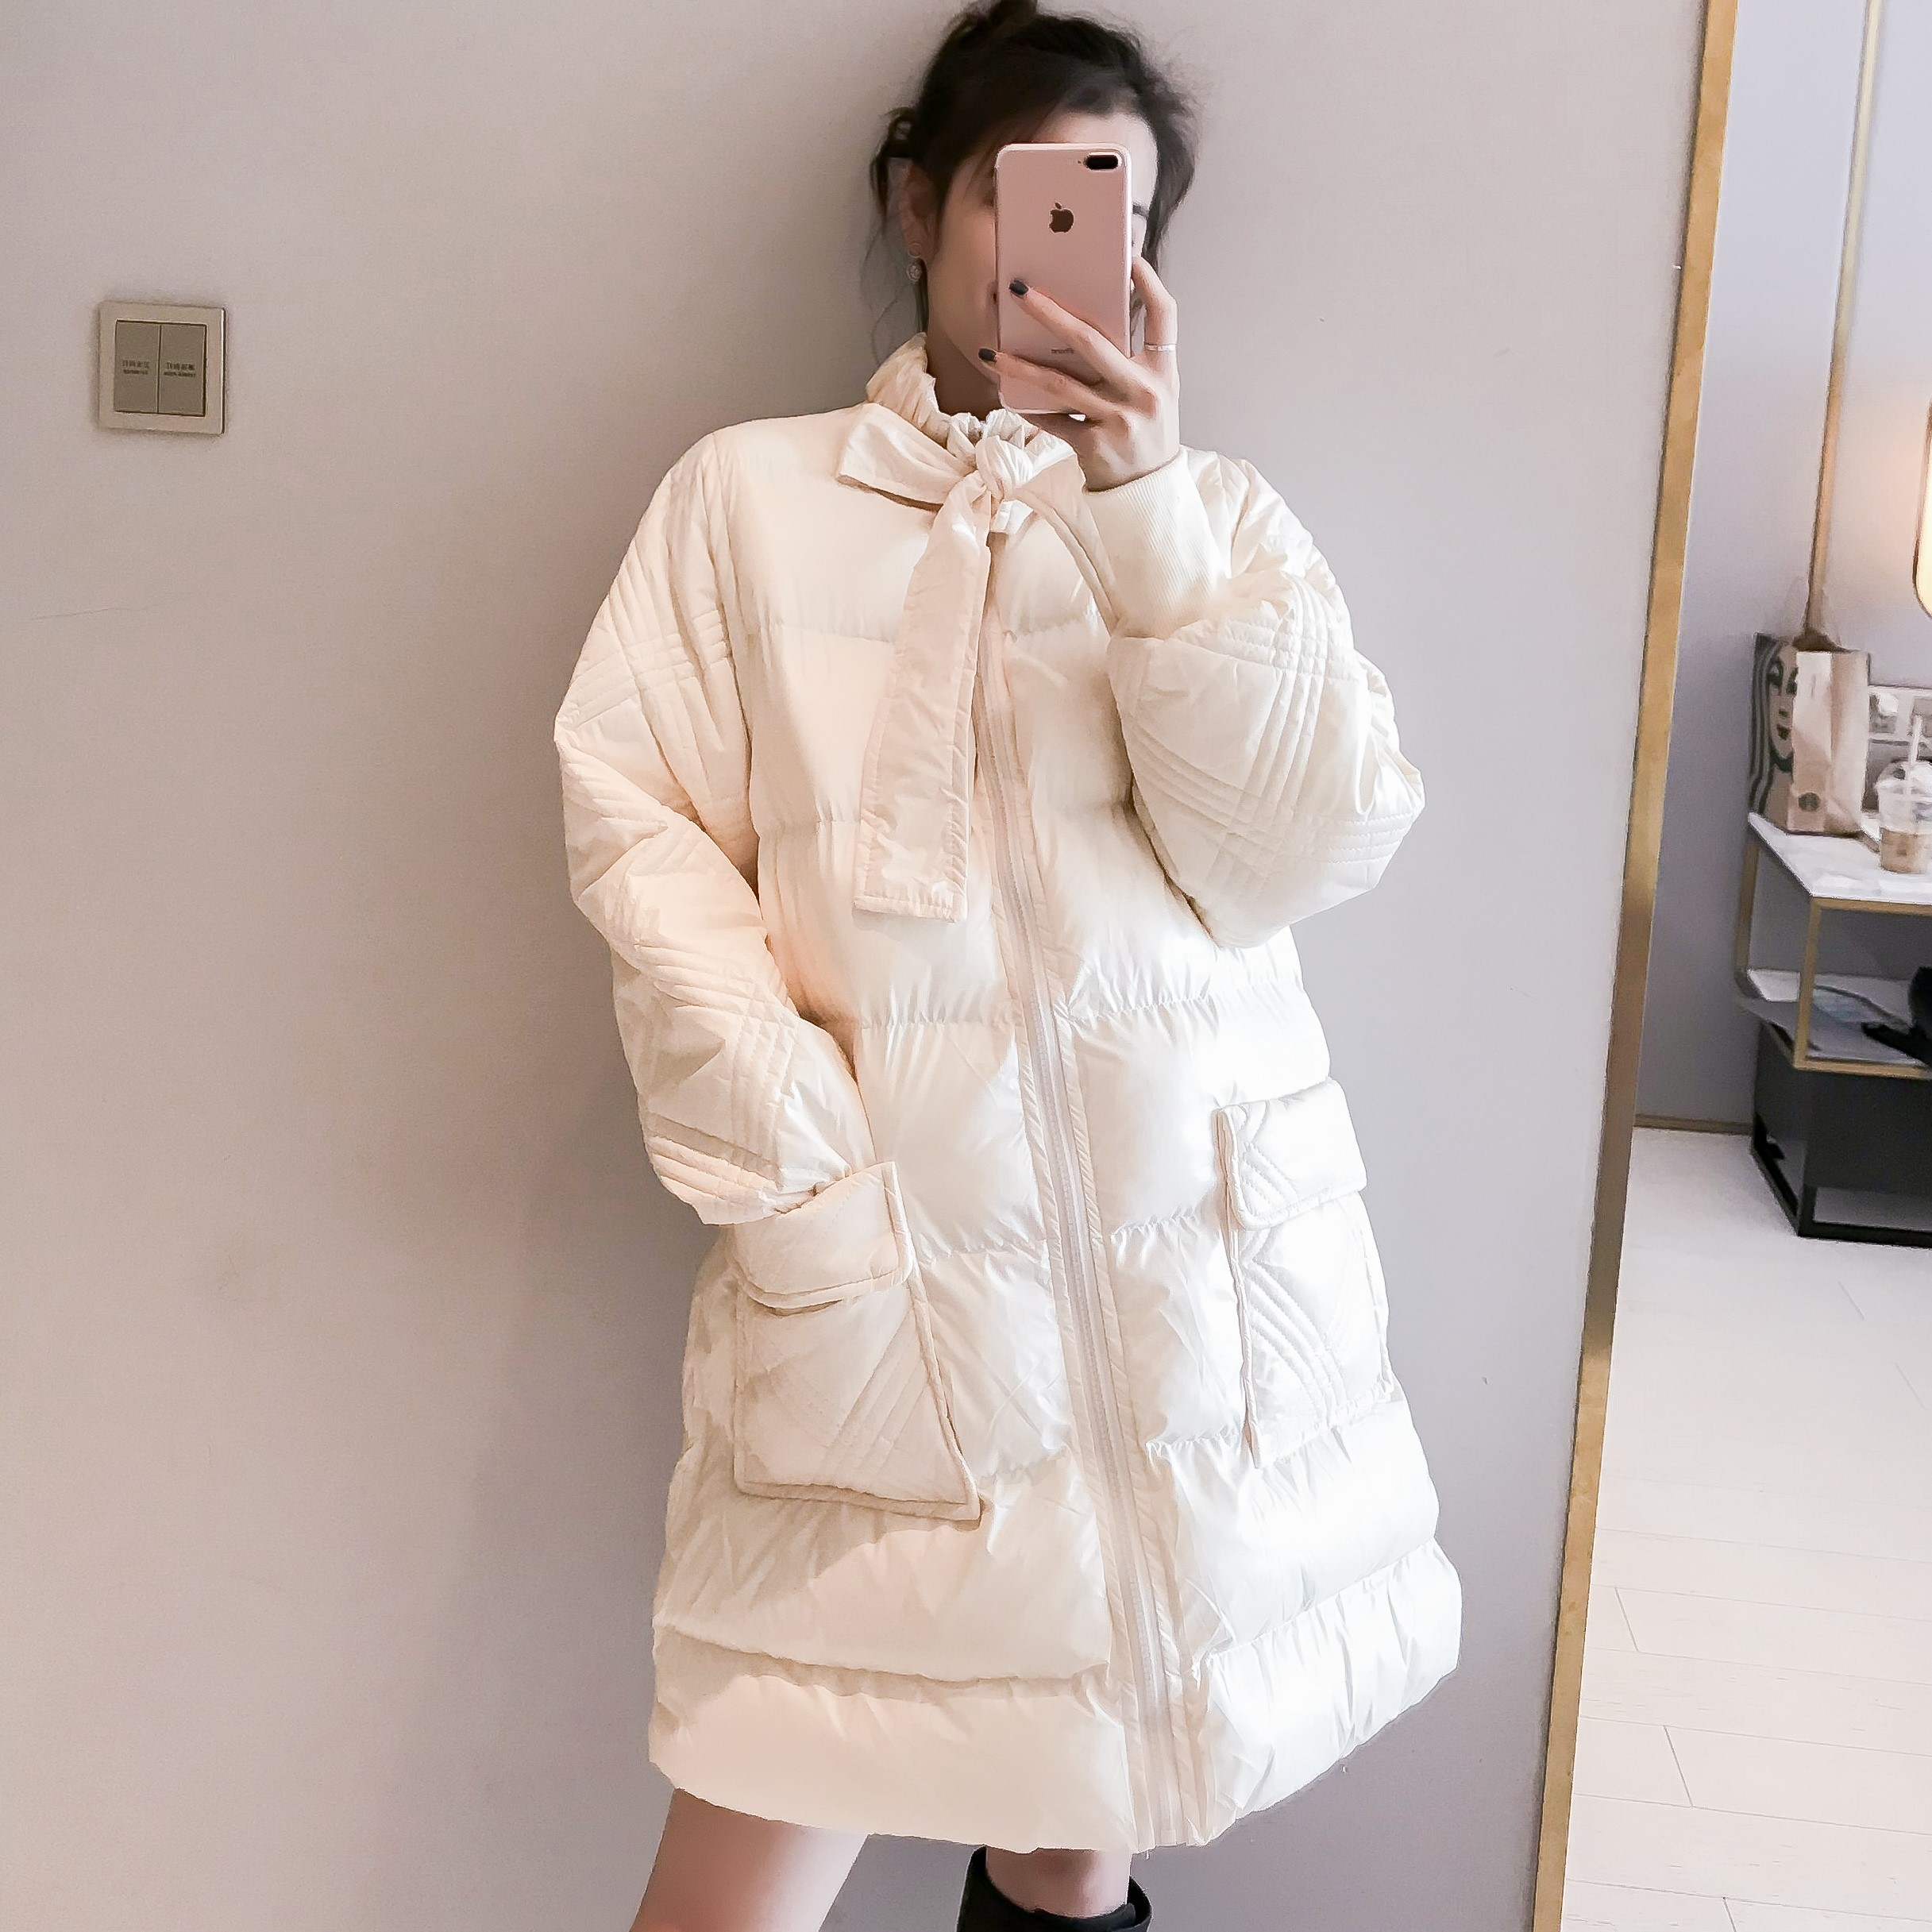 2019 new winter double 11 maternity dress pregnancy postpartum large cotton padded jacket go out warm cotton padded jacket cute fashion girl